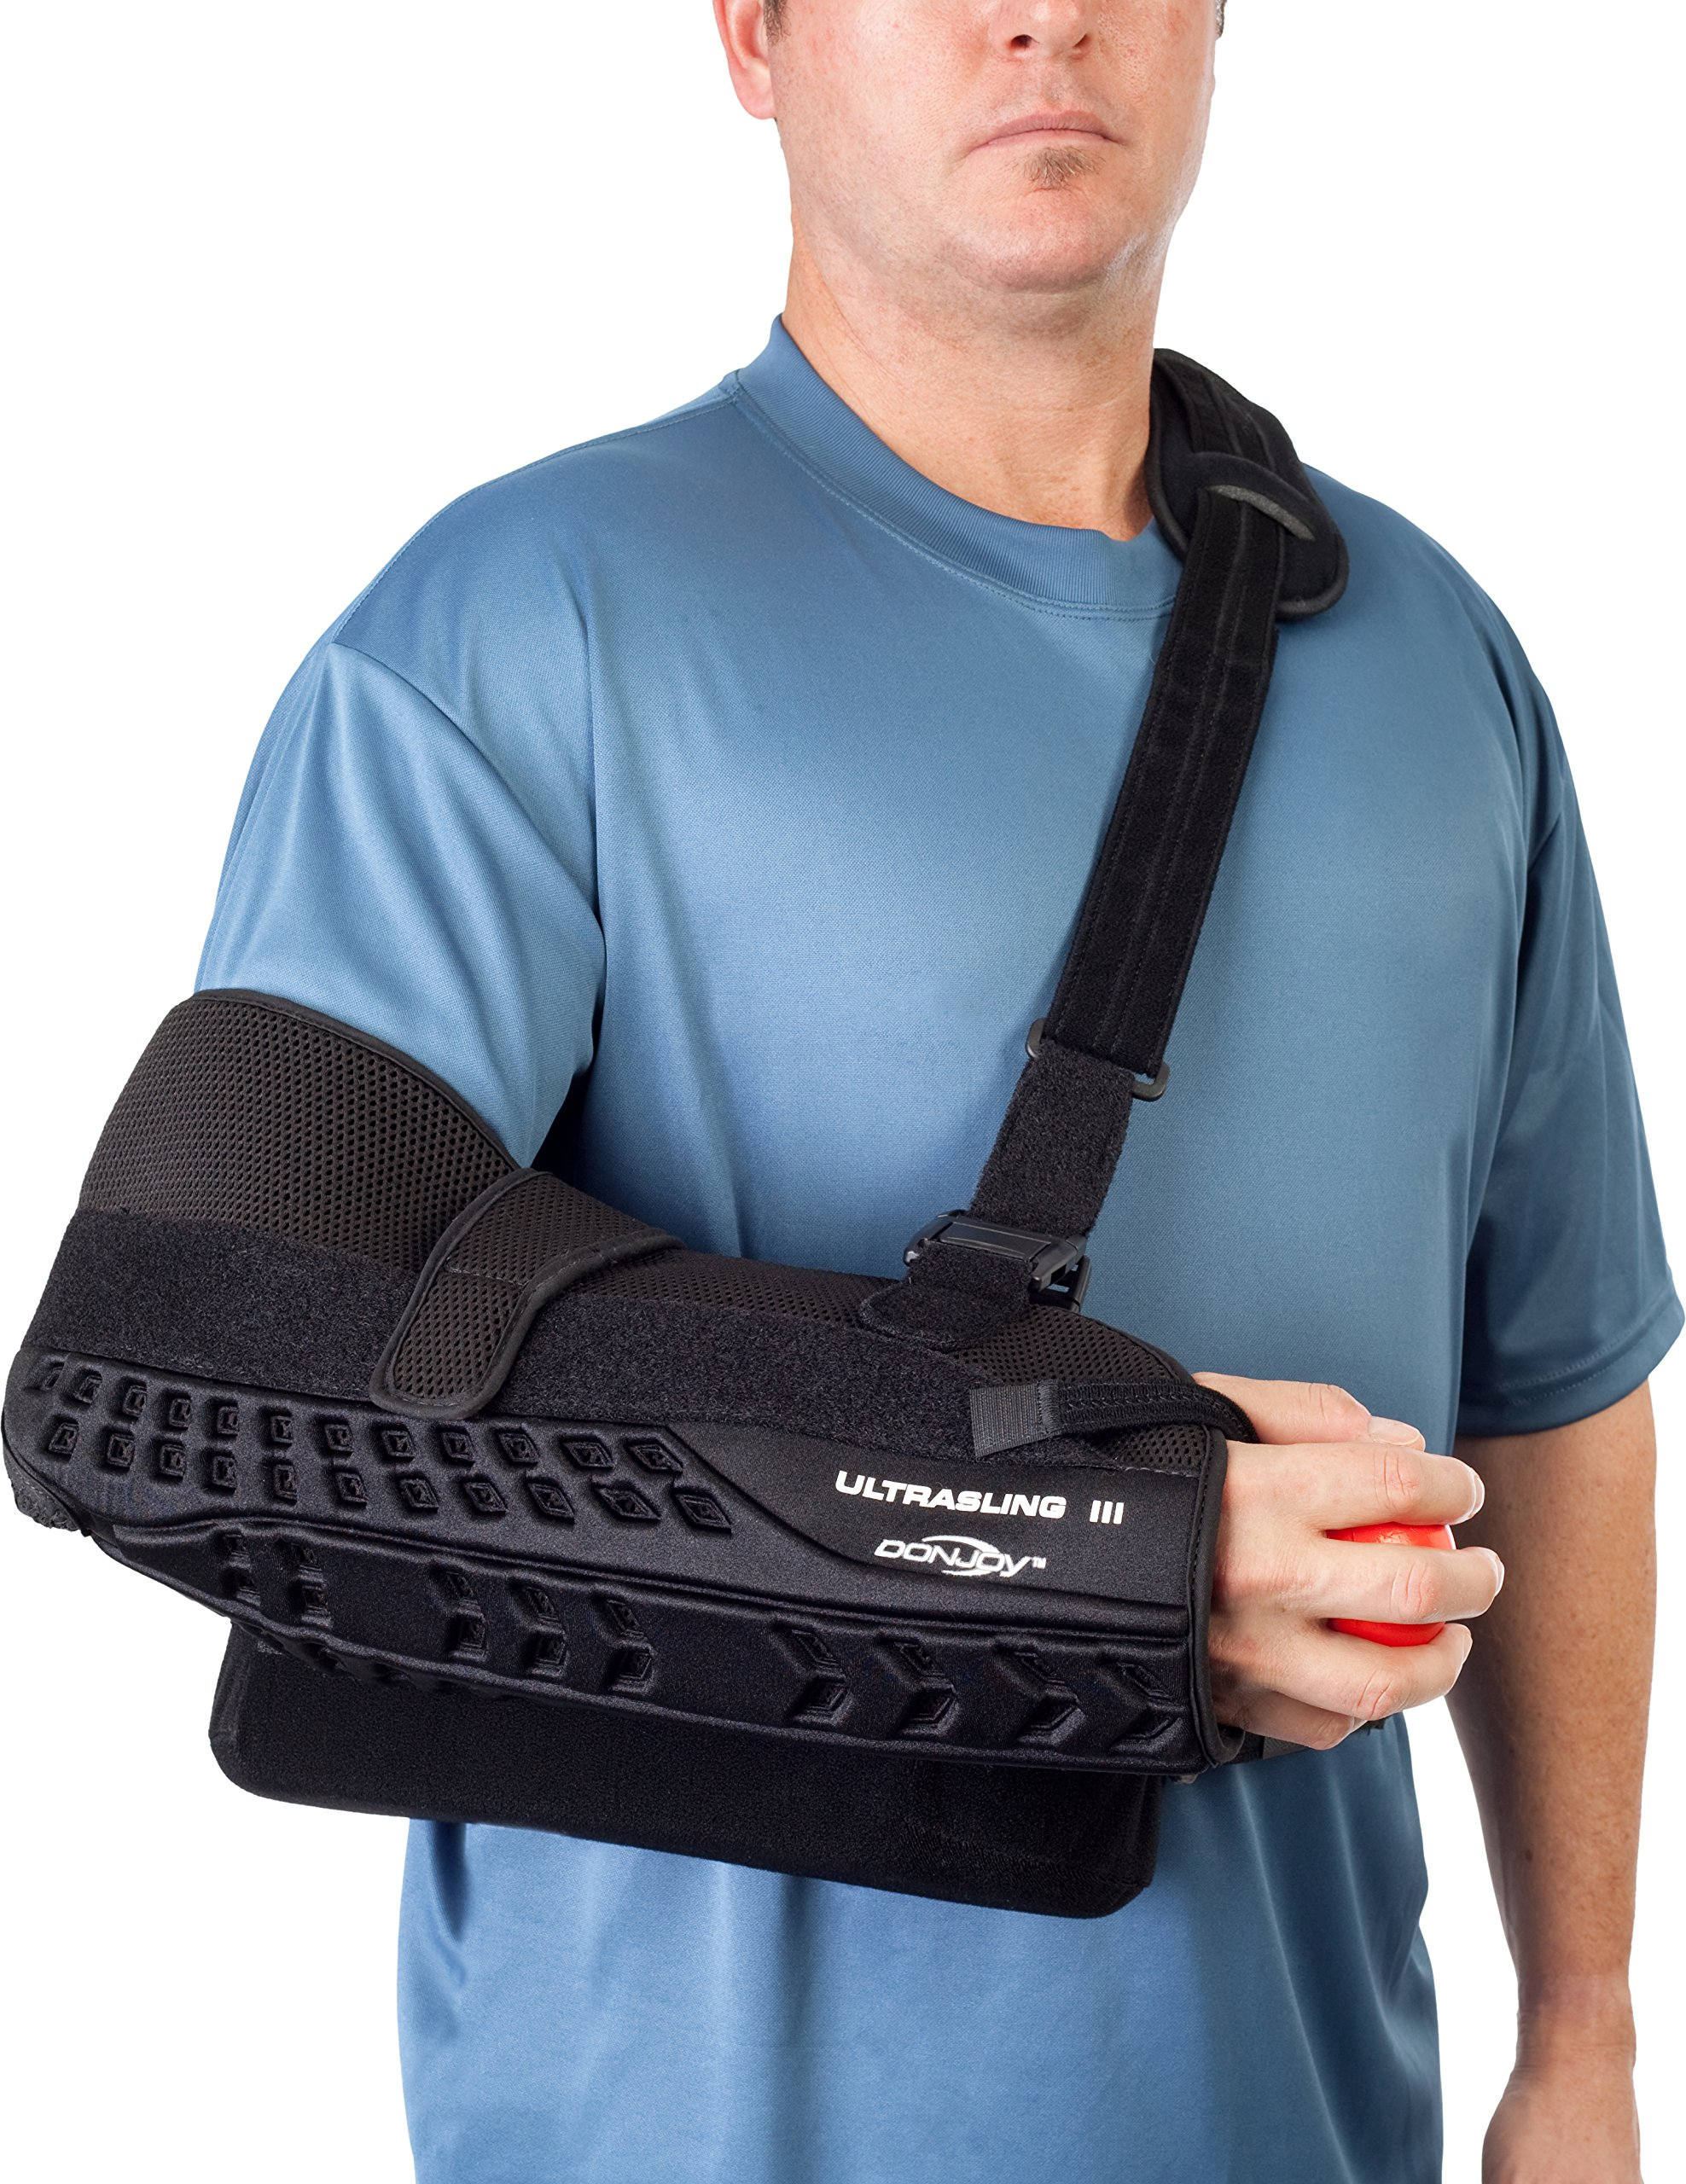 DonJoy UltraSling III Shoulder Support Sling, Small by DonJoy